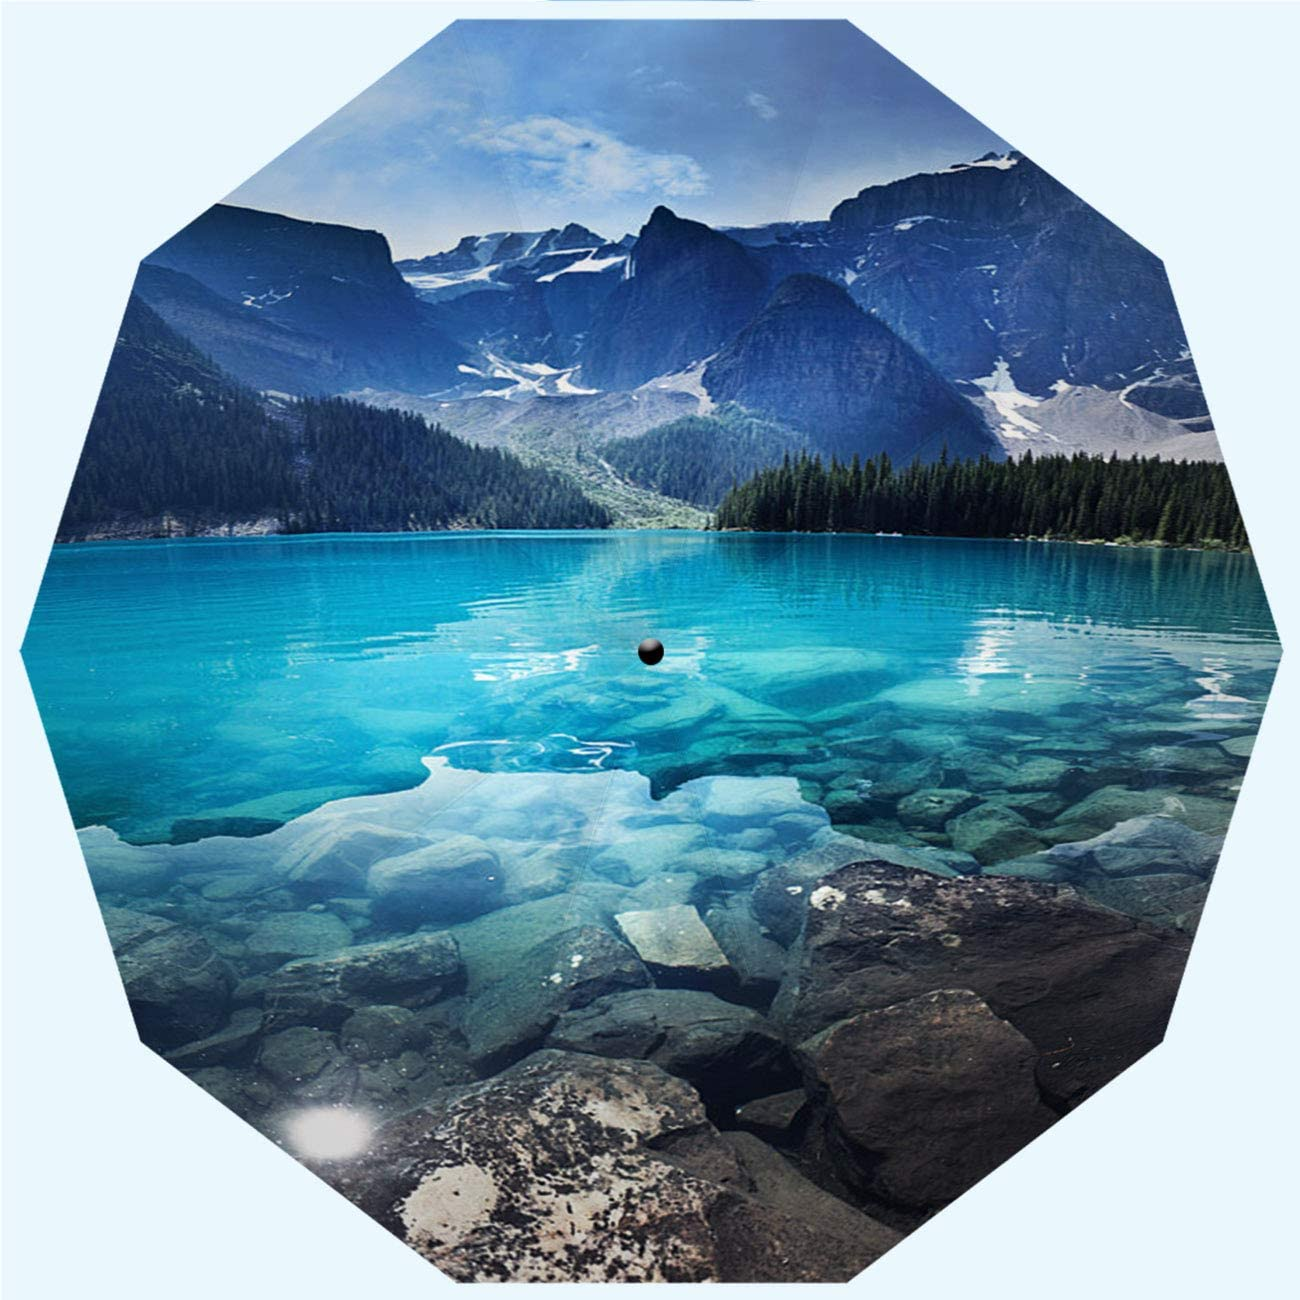 Automatic Opening and Closing Lake Moraine Banff National Park Emerald Water Landscape Alberta Windproof Rainproof RLDSESS Landscape Rainproof Patio Umbrella Men 10 Ribs Ladies 42 Inches